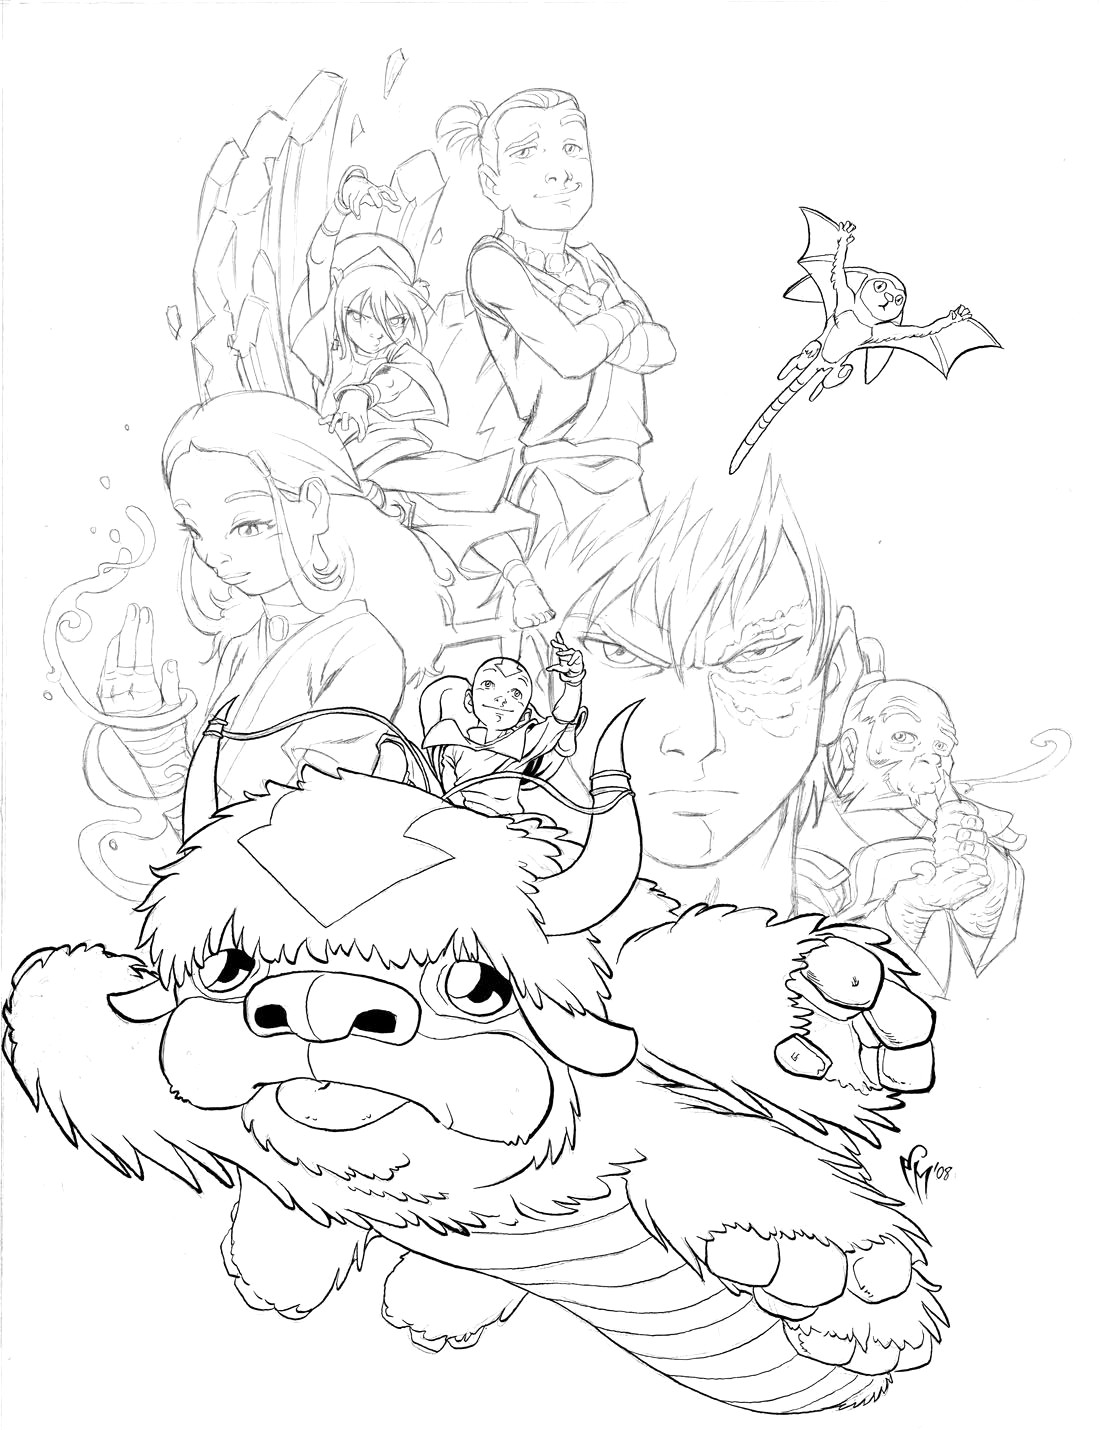 1100x1430 Fnaf Coloring Pages R Cute Avatar The Last Airbender Momo